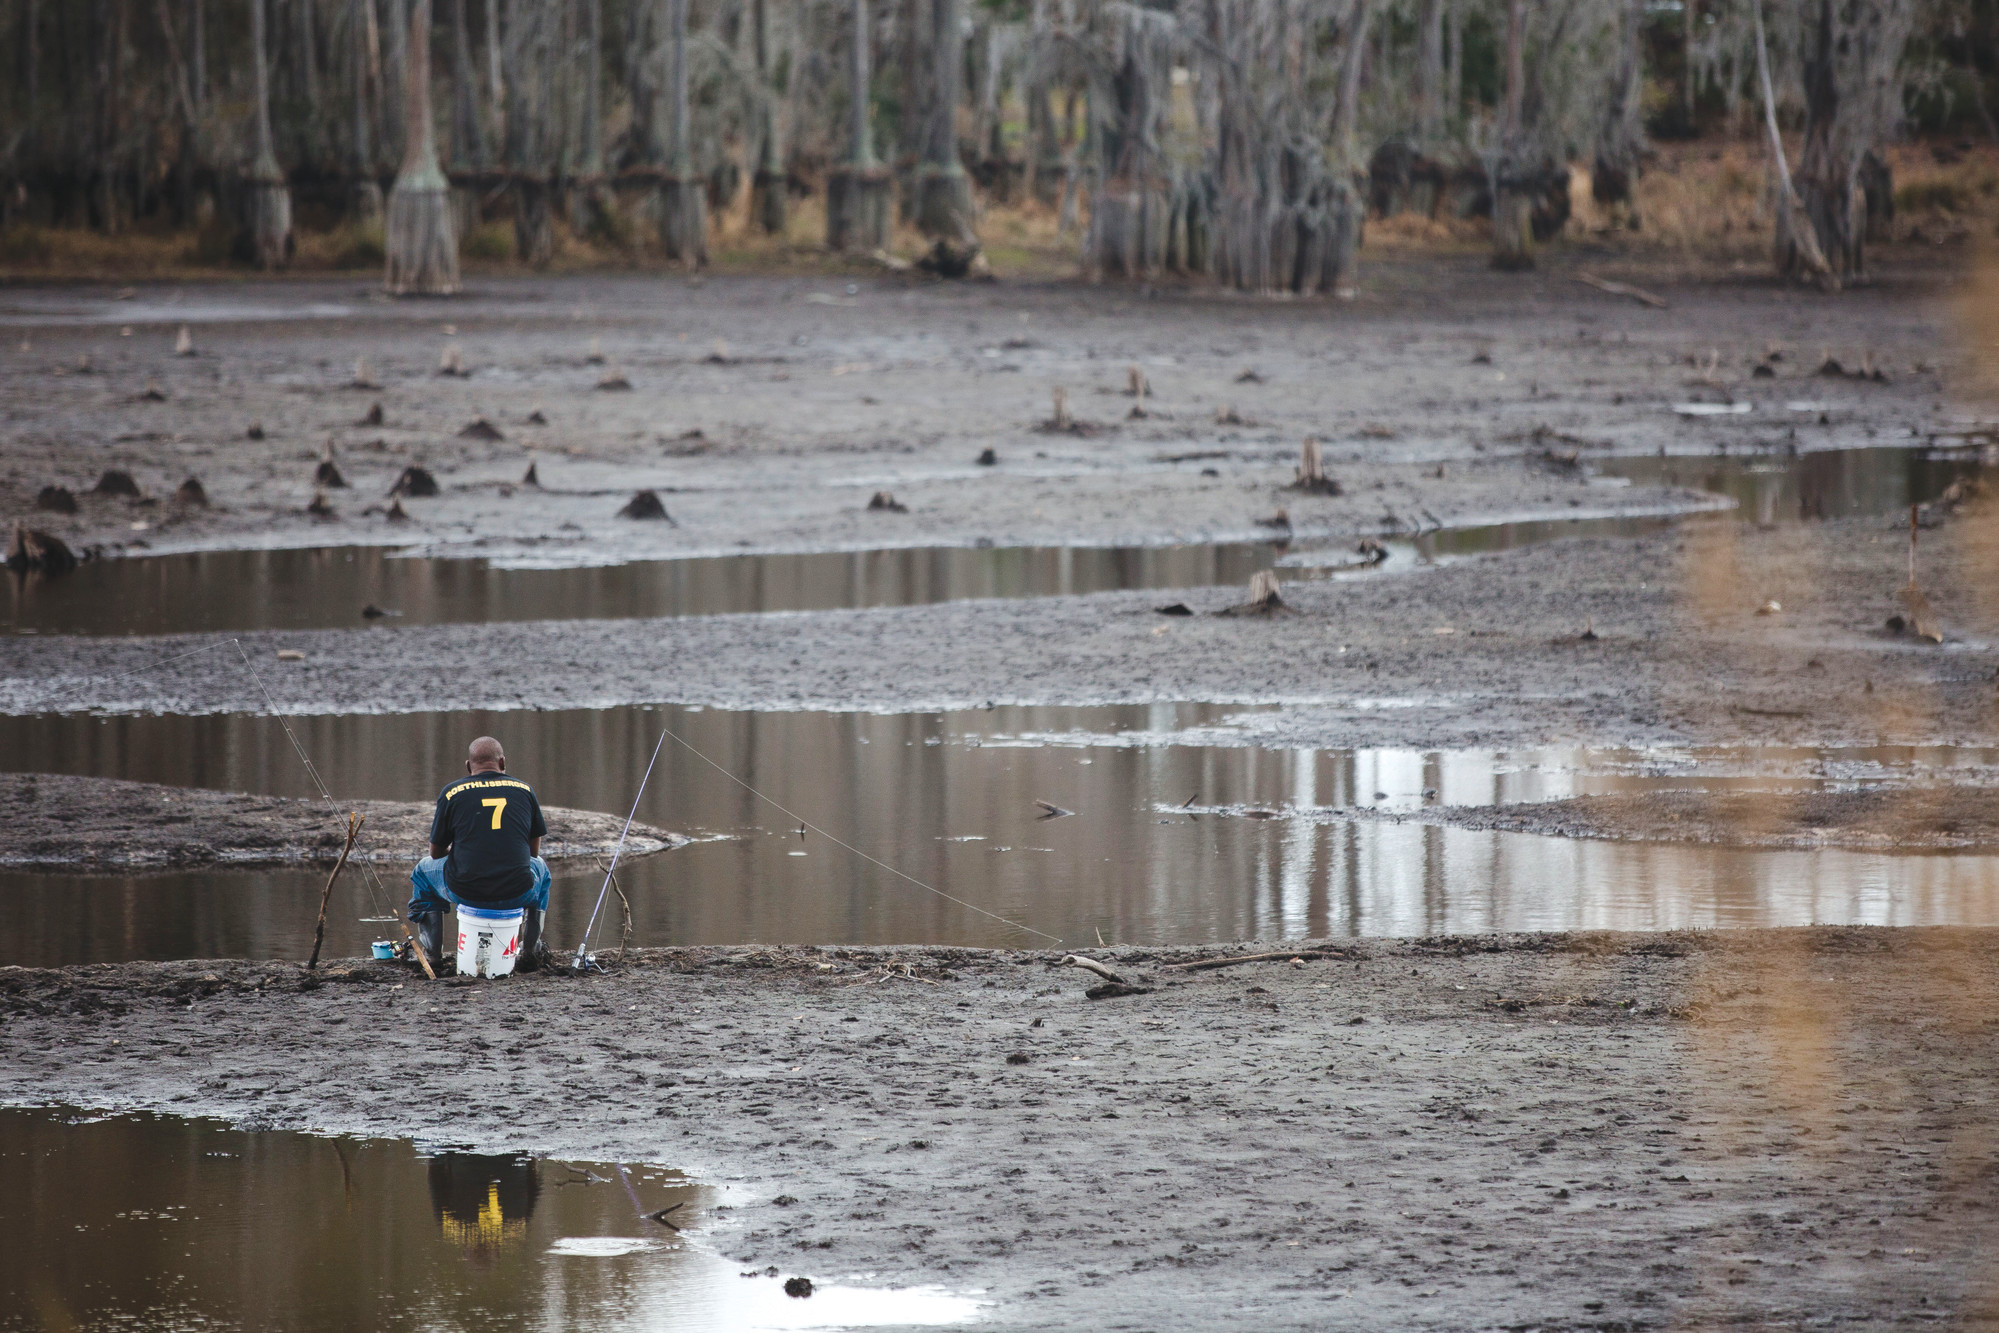 A man fishes in the low water of Second Mill Pond recently. After two years of working with the Federal Emergency Management Agency and contractors for the project, repair work on the dam started in late January. It was damaged after the flood in 2015.